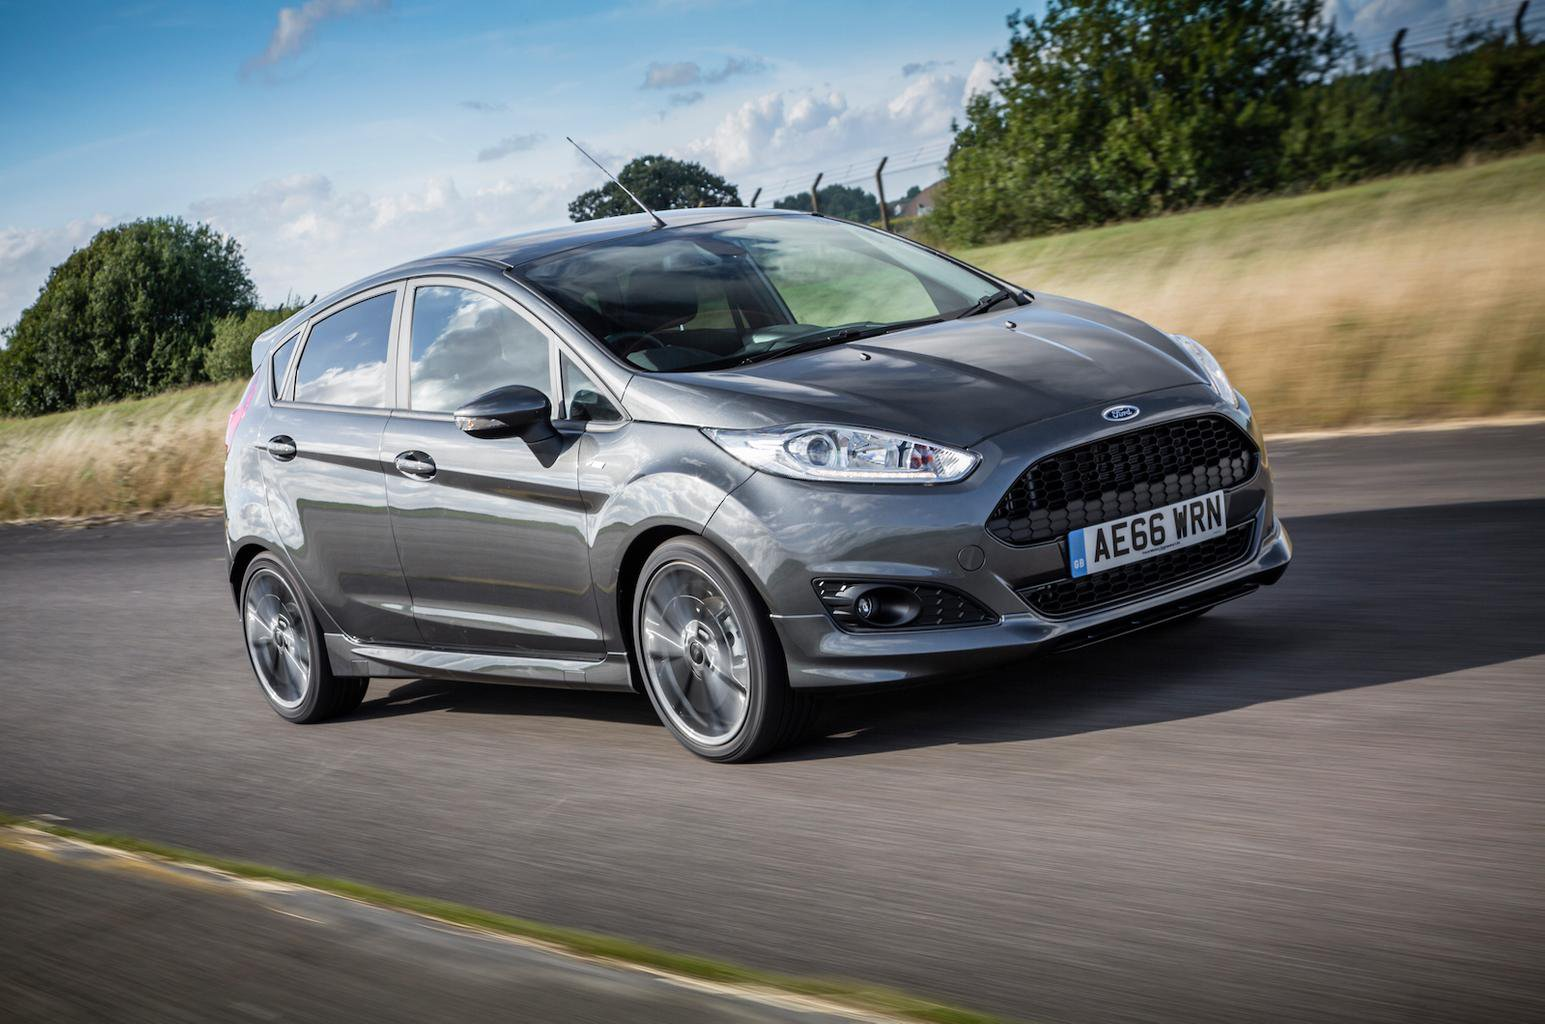 2016 Ford Fiesta 1.0 Ecoboost 140 ST-Line review